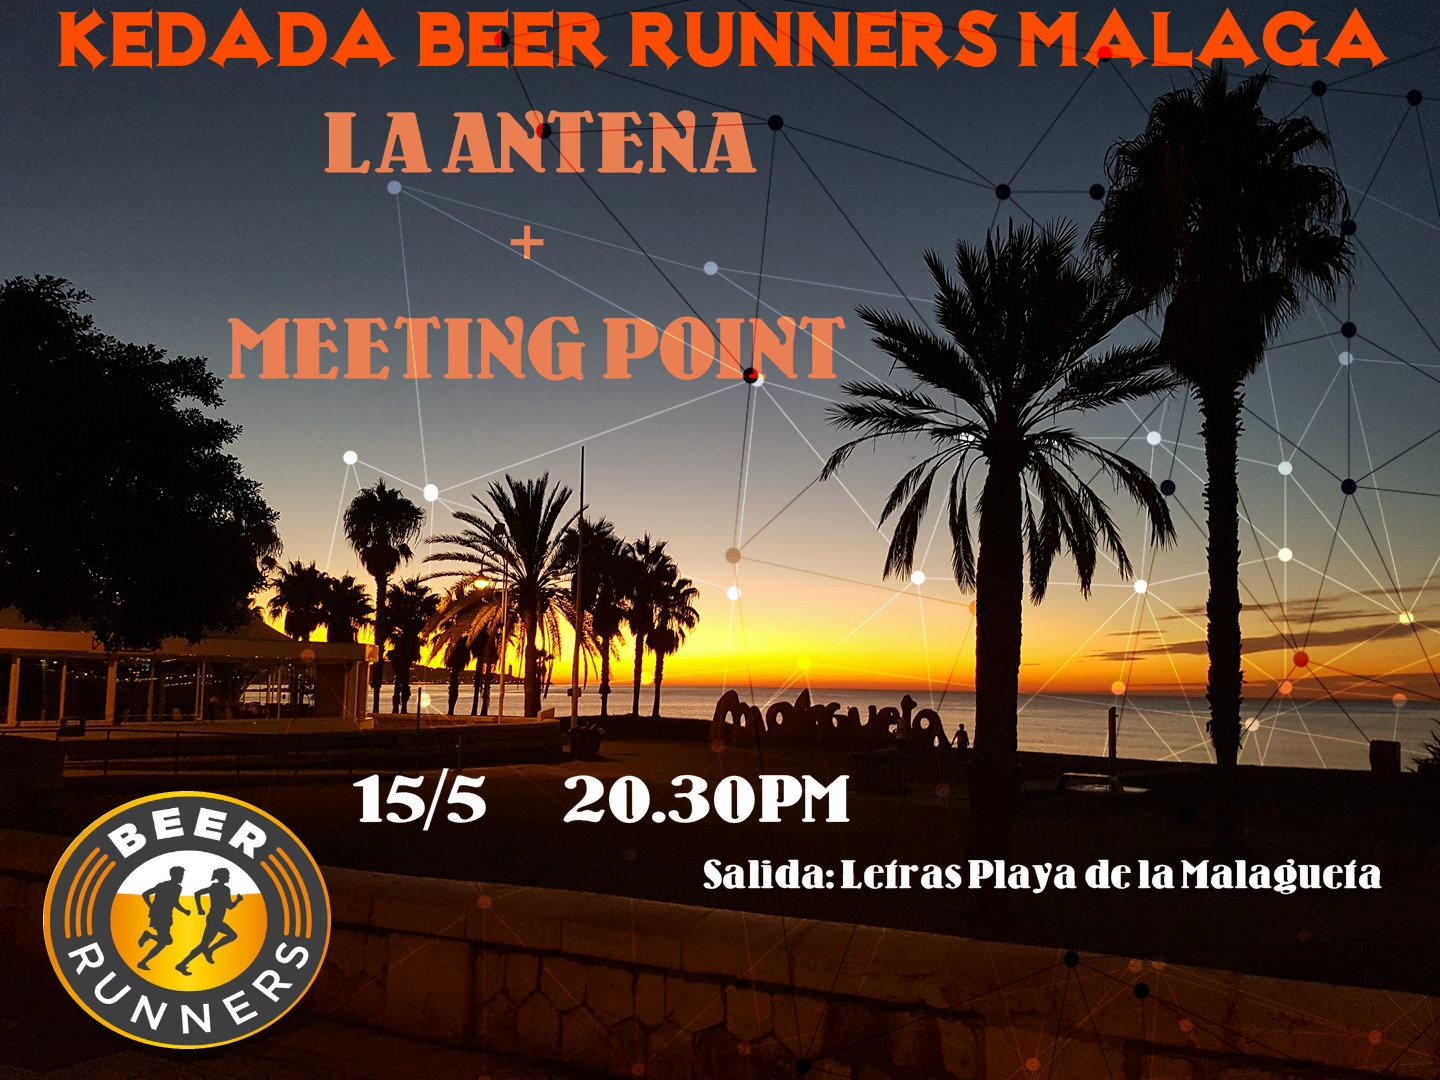 LA ANTENA + MEETING POINT